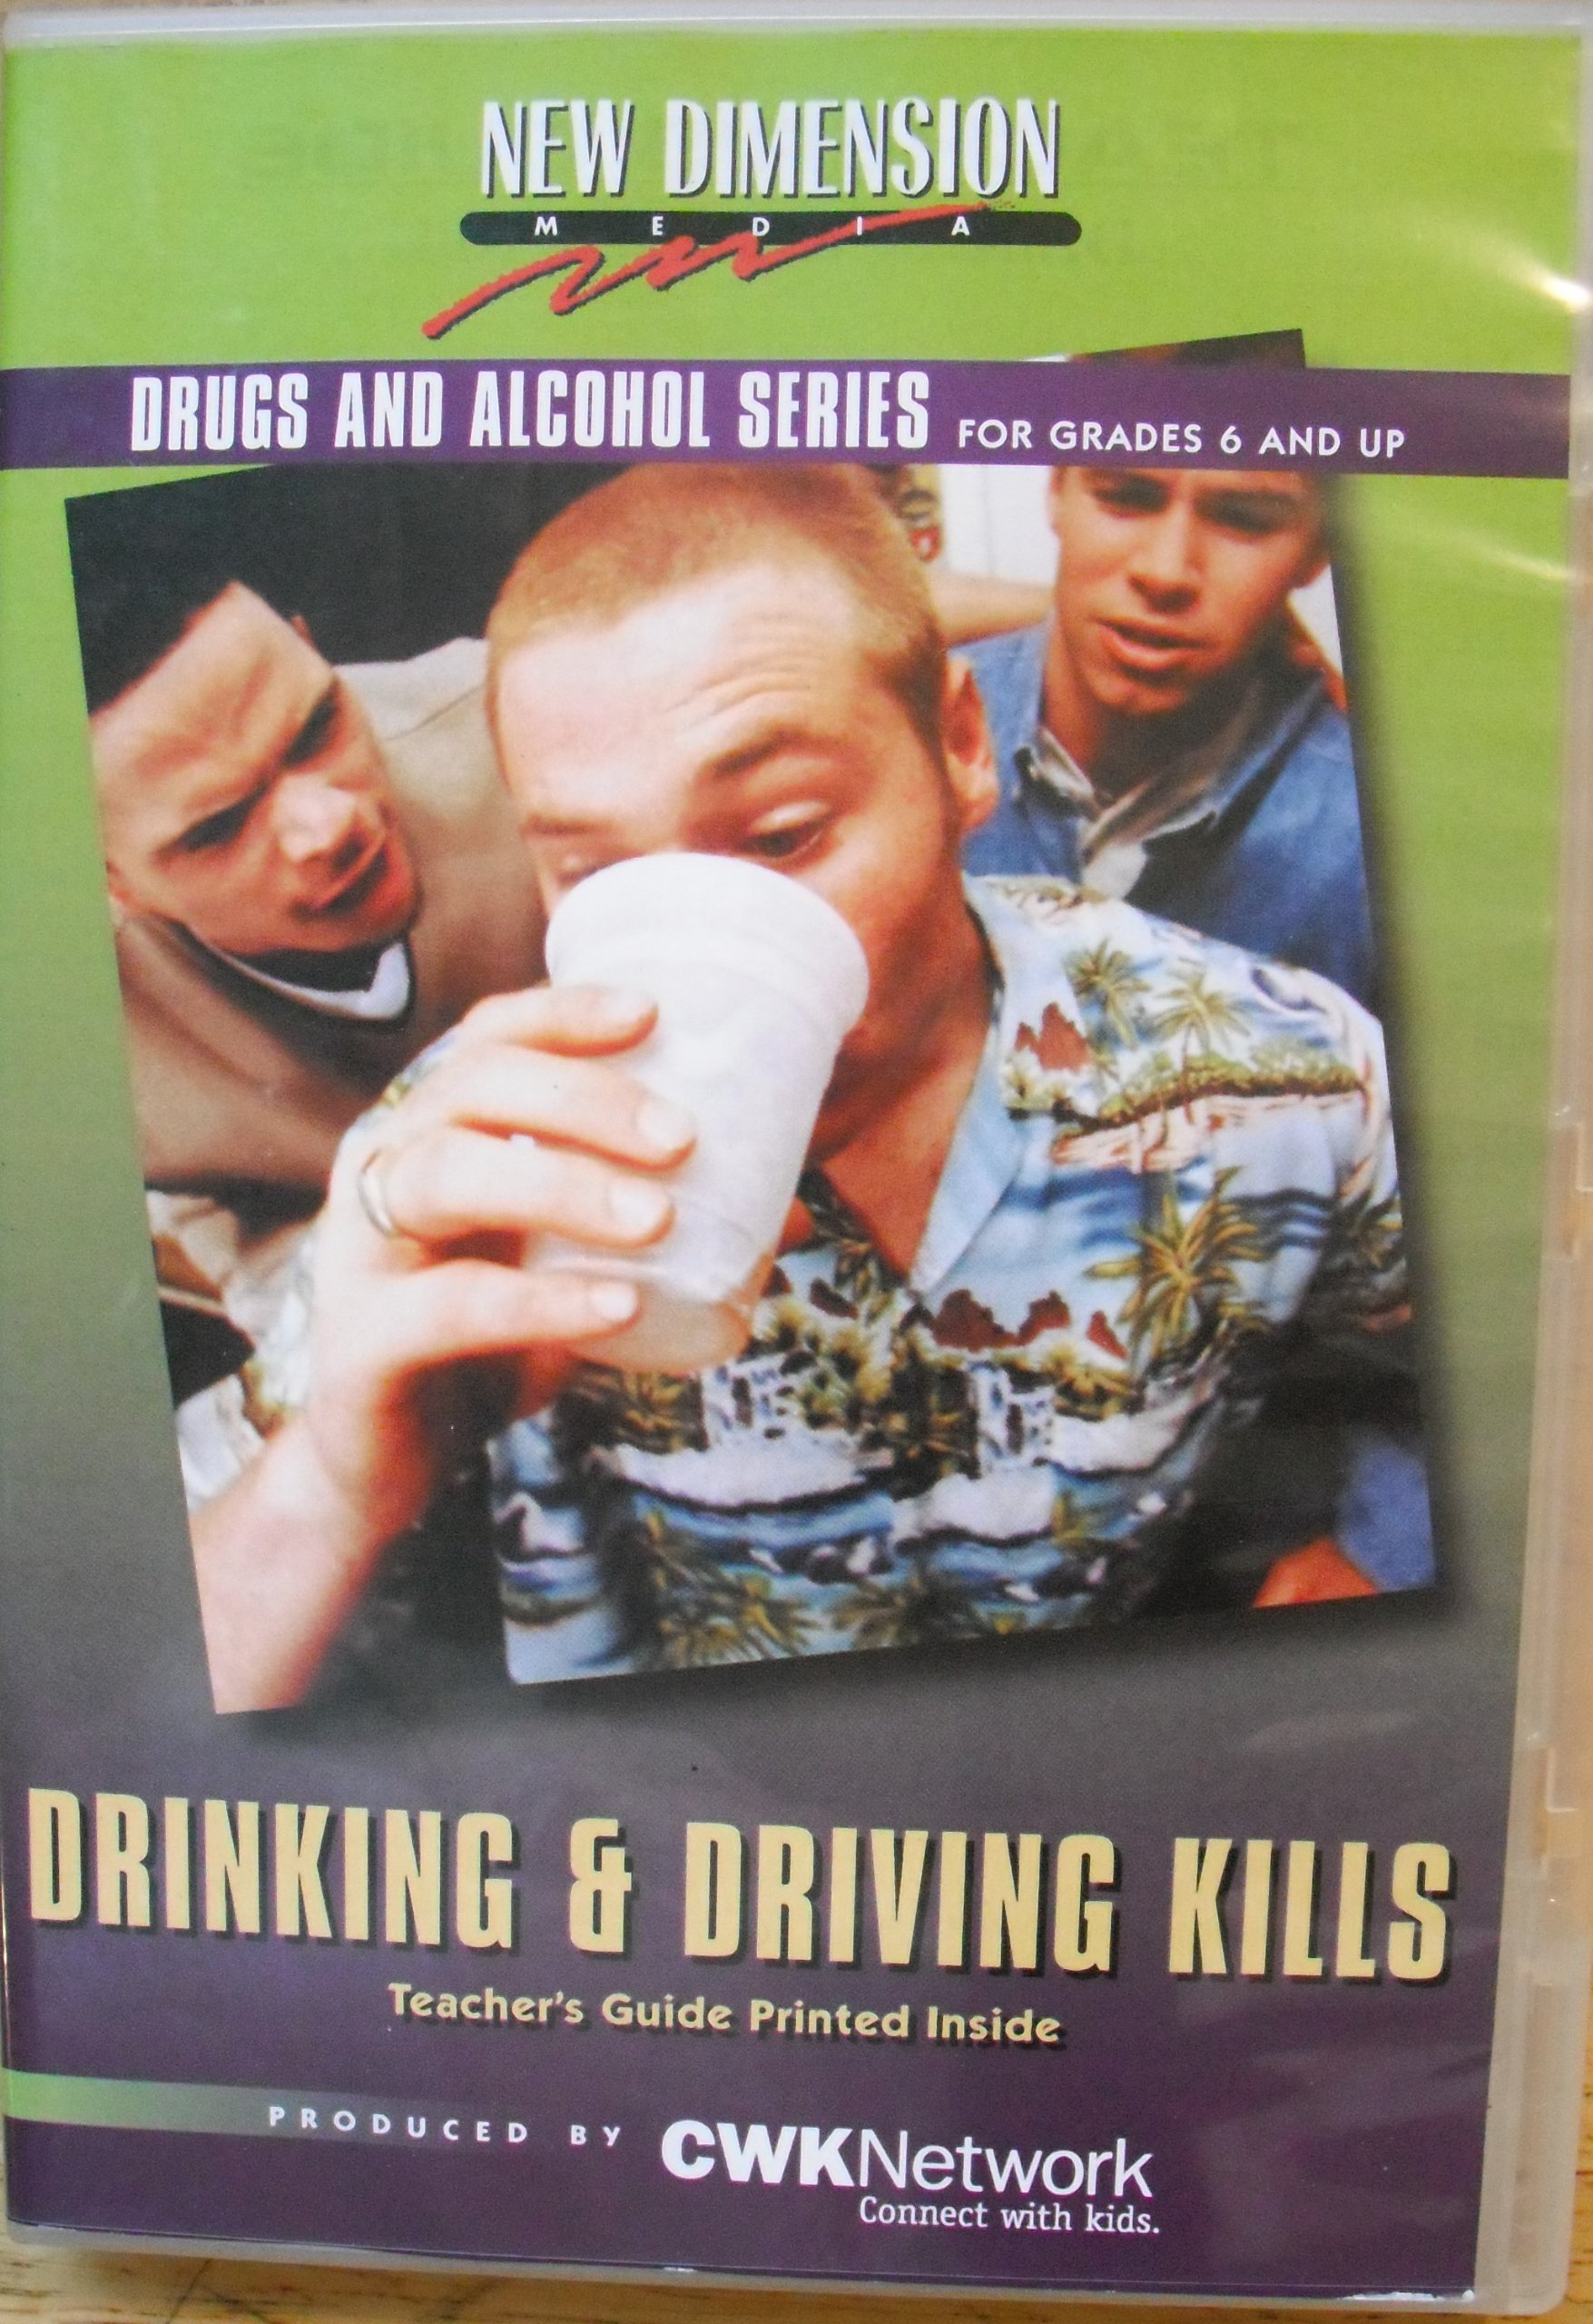 Drinking & Driving Kills by New Dimension Media